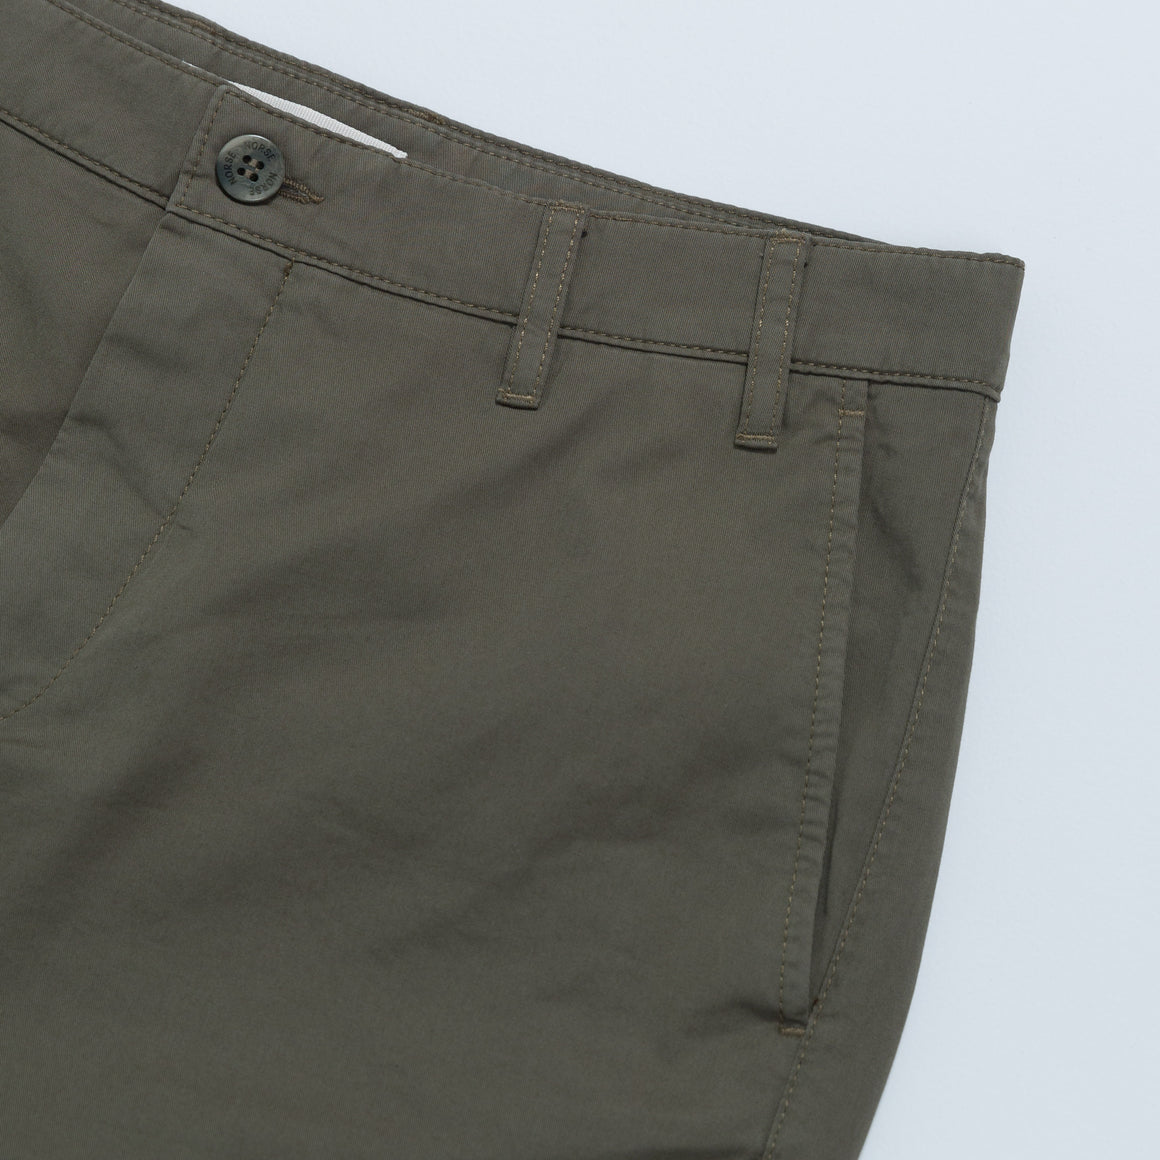 Aros Light Twill Shorts - Ivy Green - Up There